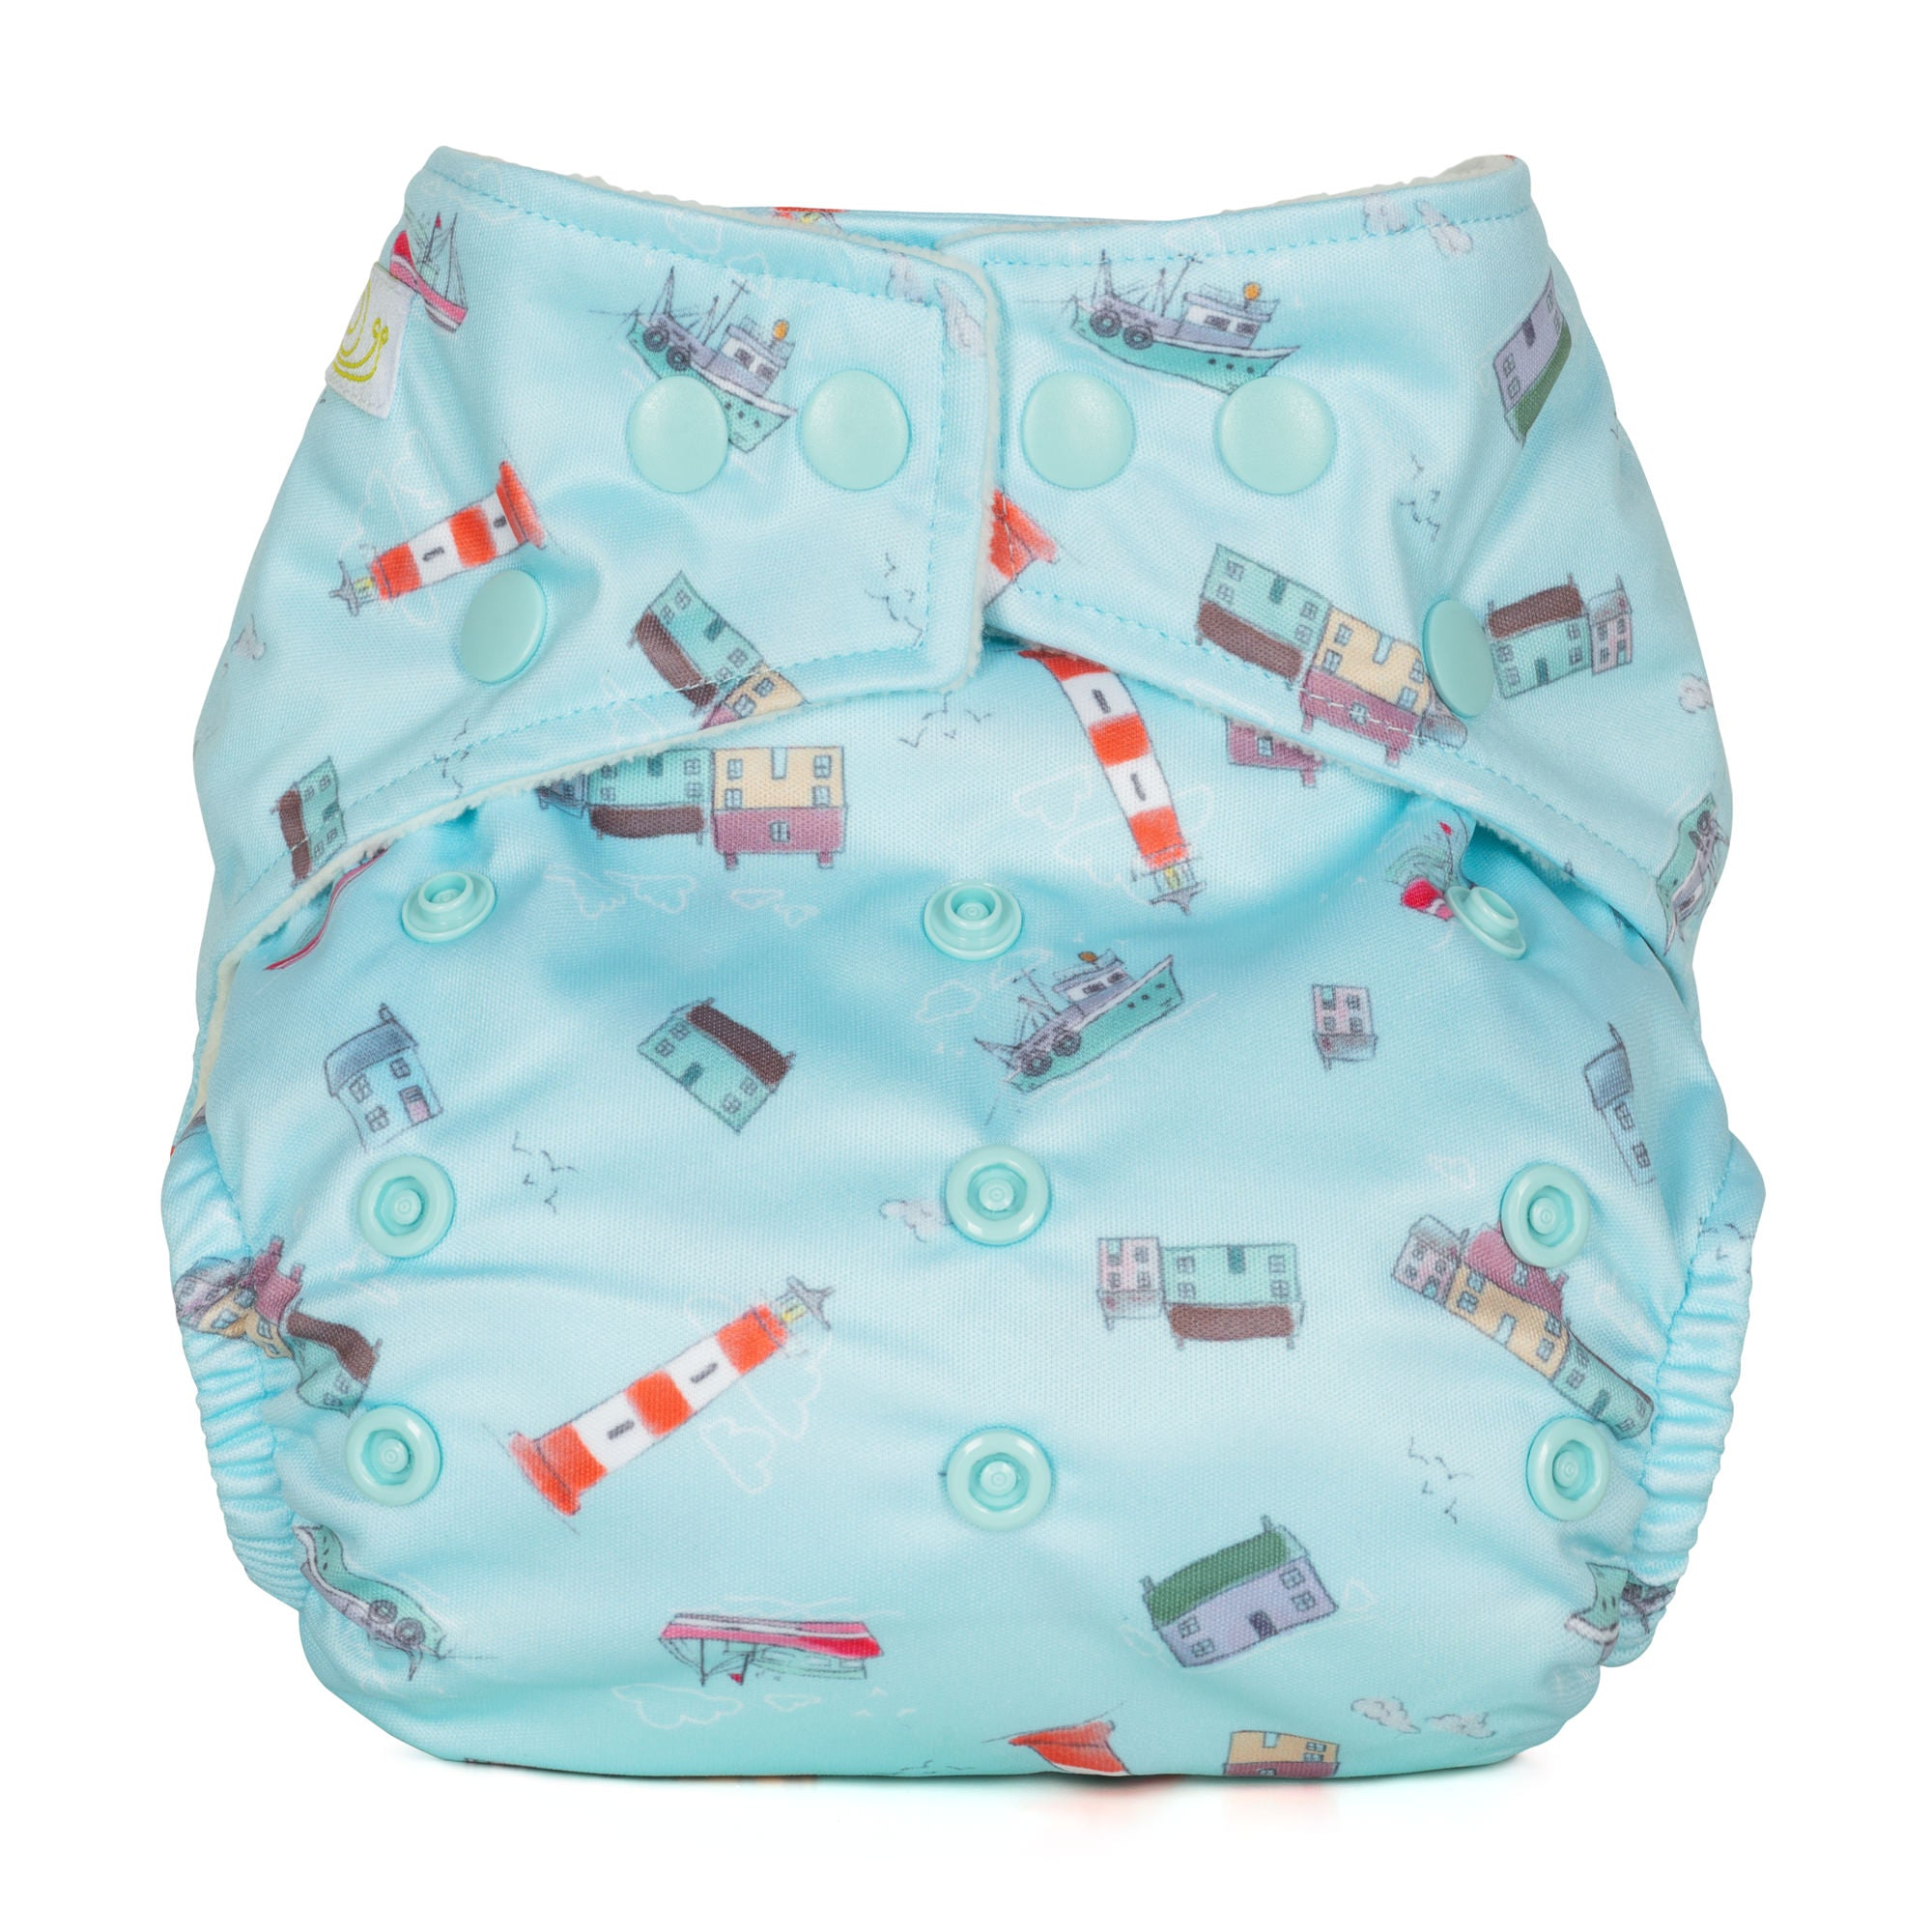 Baba and Boo One Size Pocket Cloth Nappy - Lighthouse